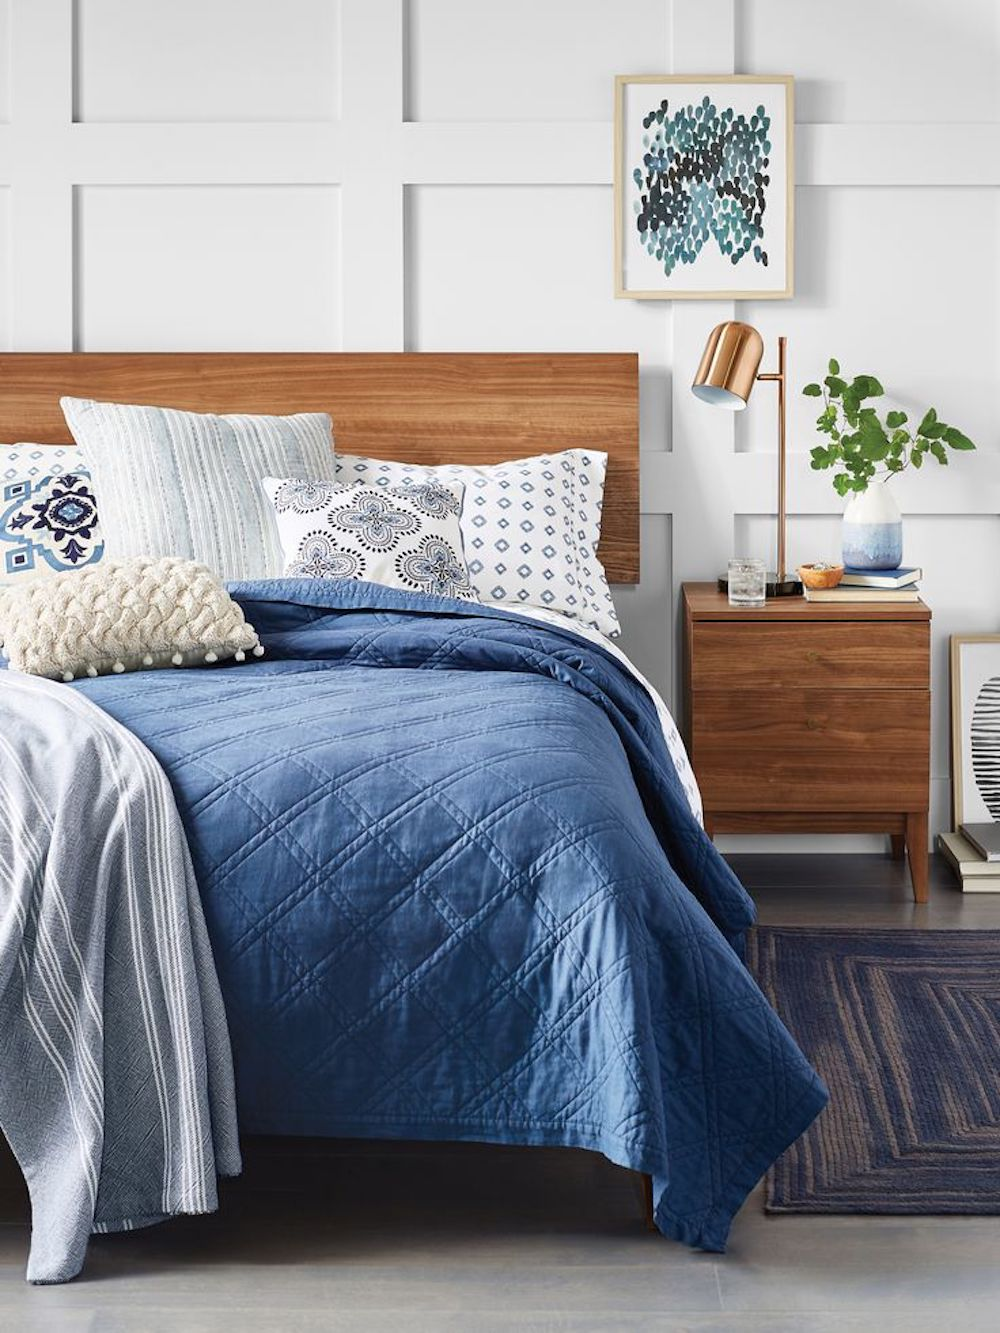 Create Your Dream Bed With Deals From Target's Big Bedding Sale